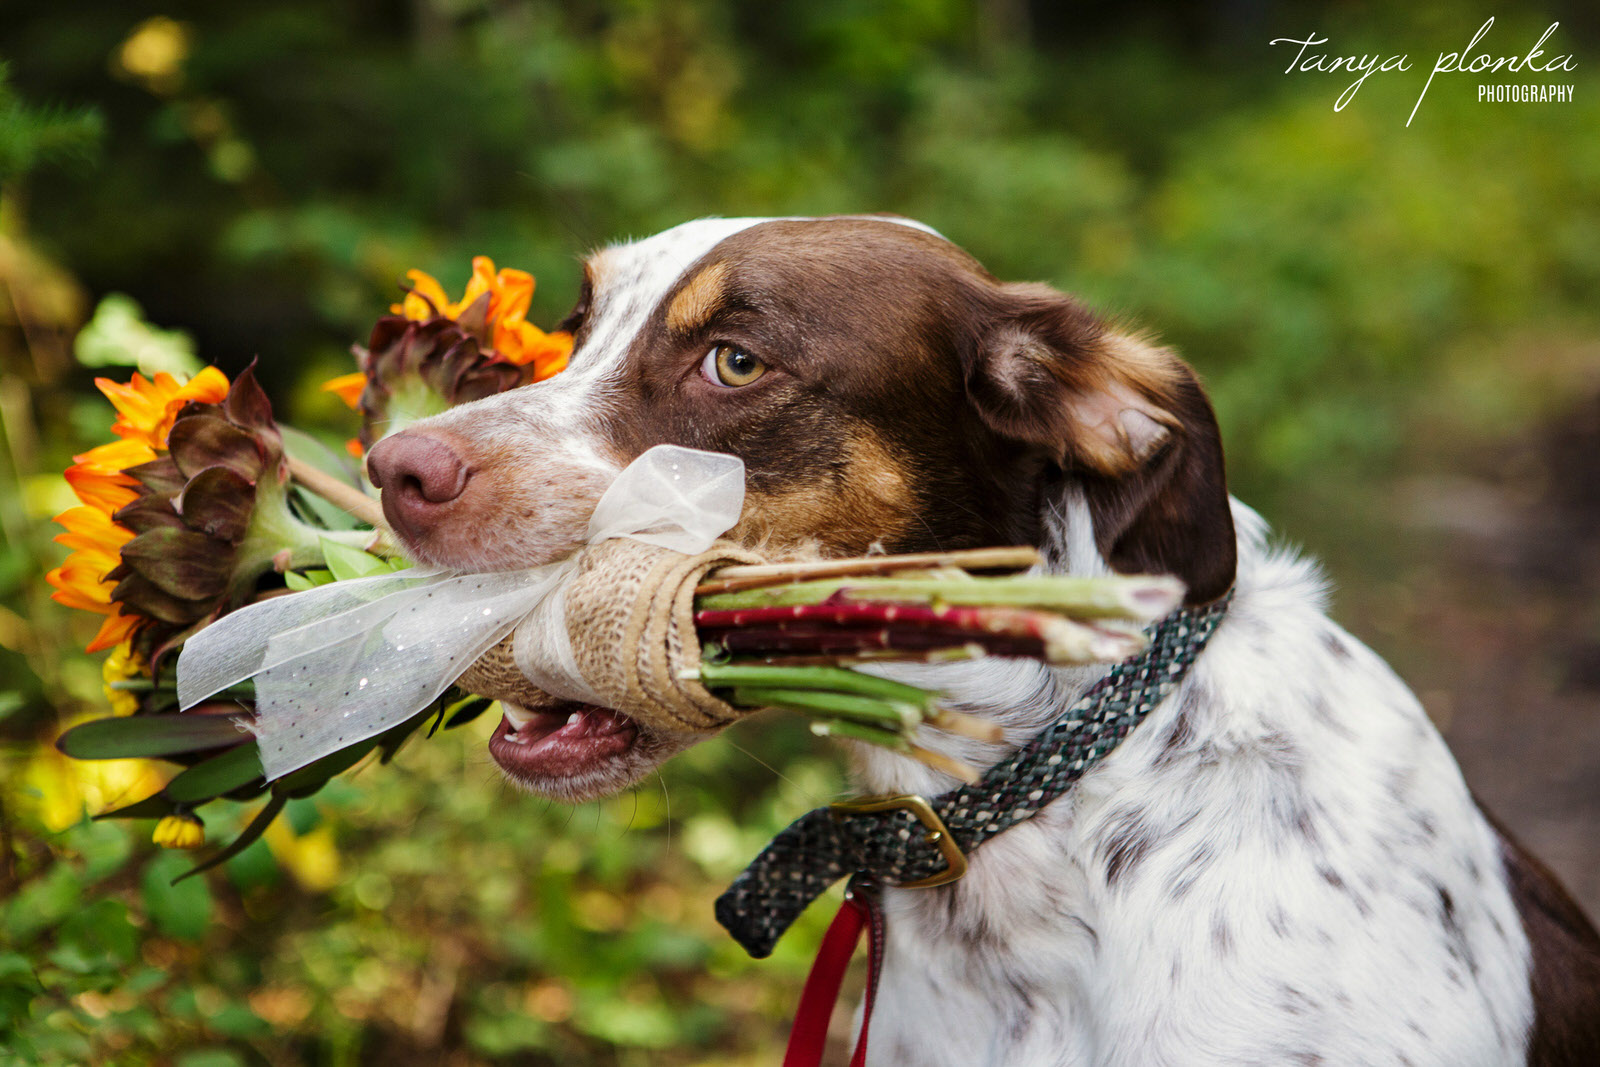 pet dog holding wedding bouquet in mouth